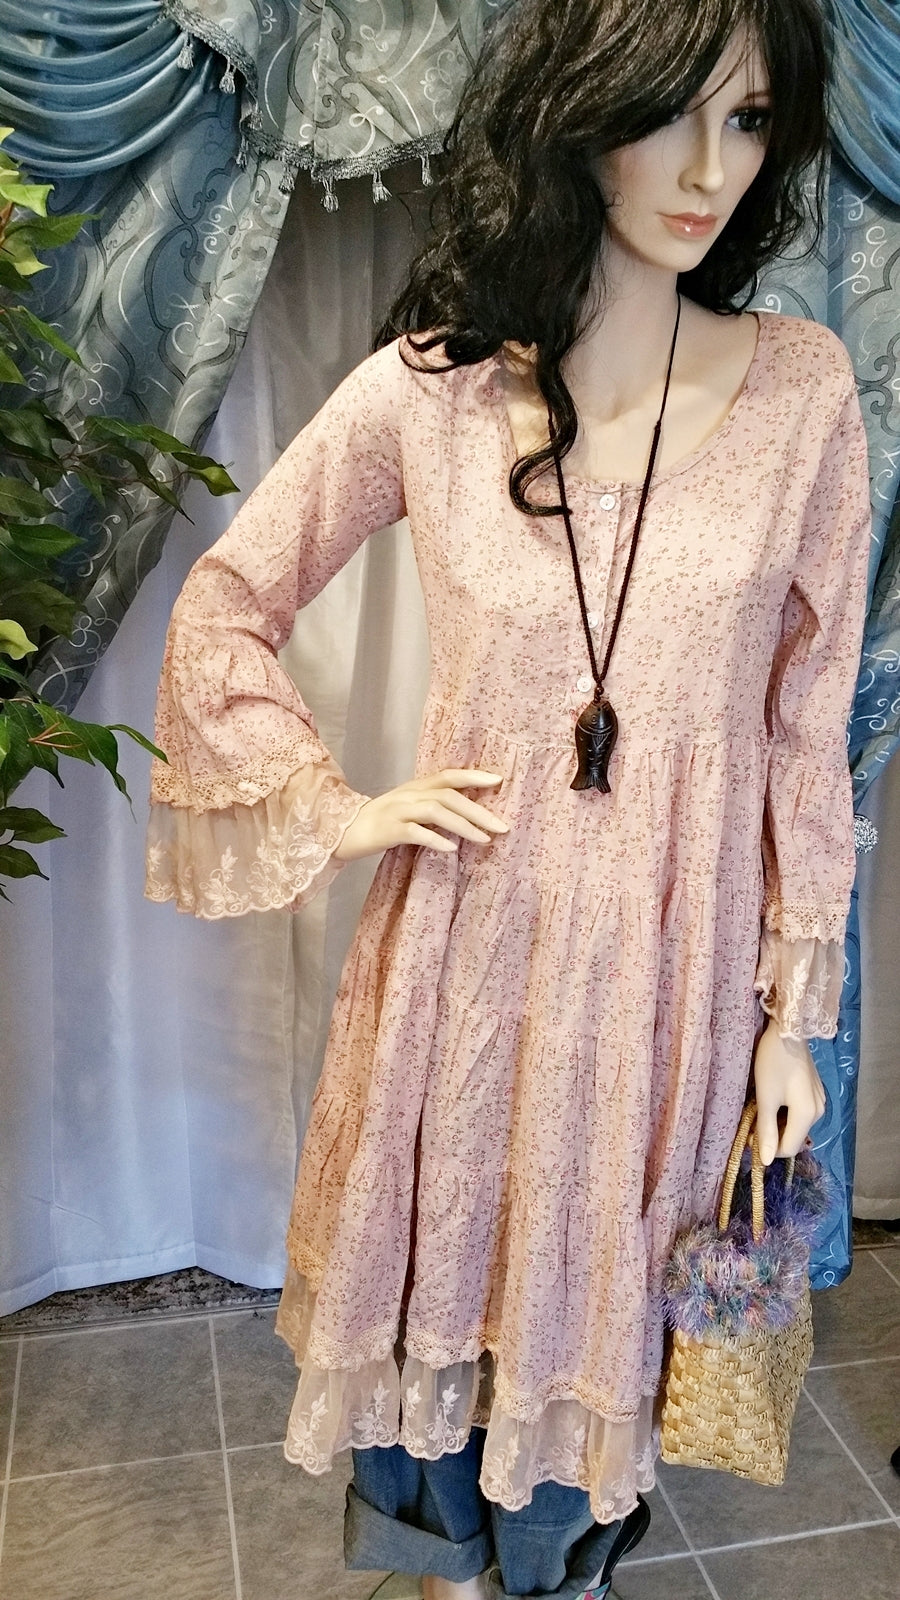 Romantic Floral Pink Boho Vintage Dress with Long Sleeves